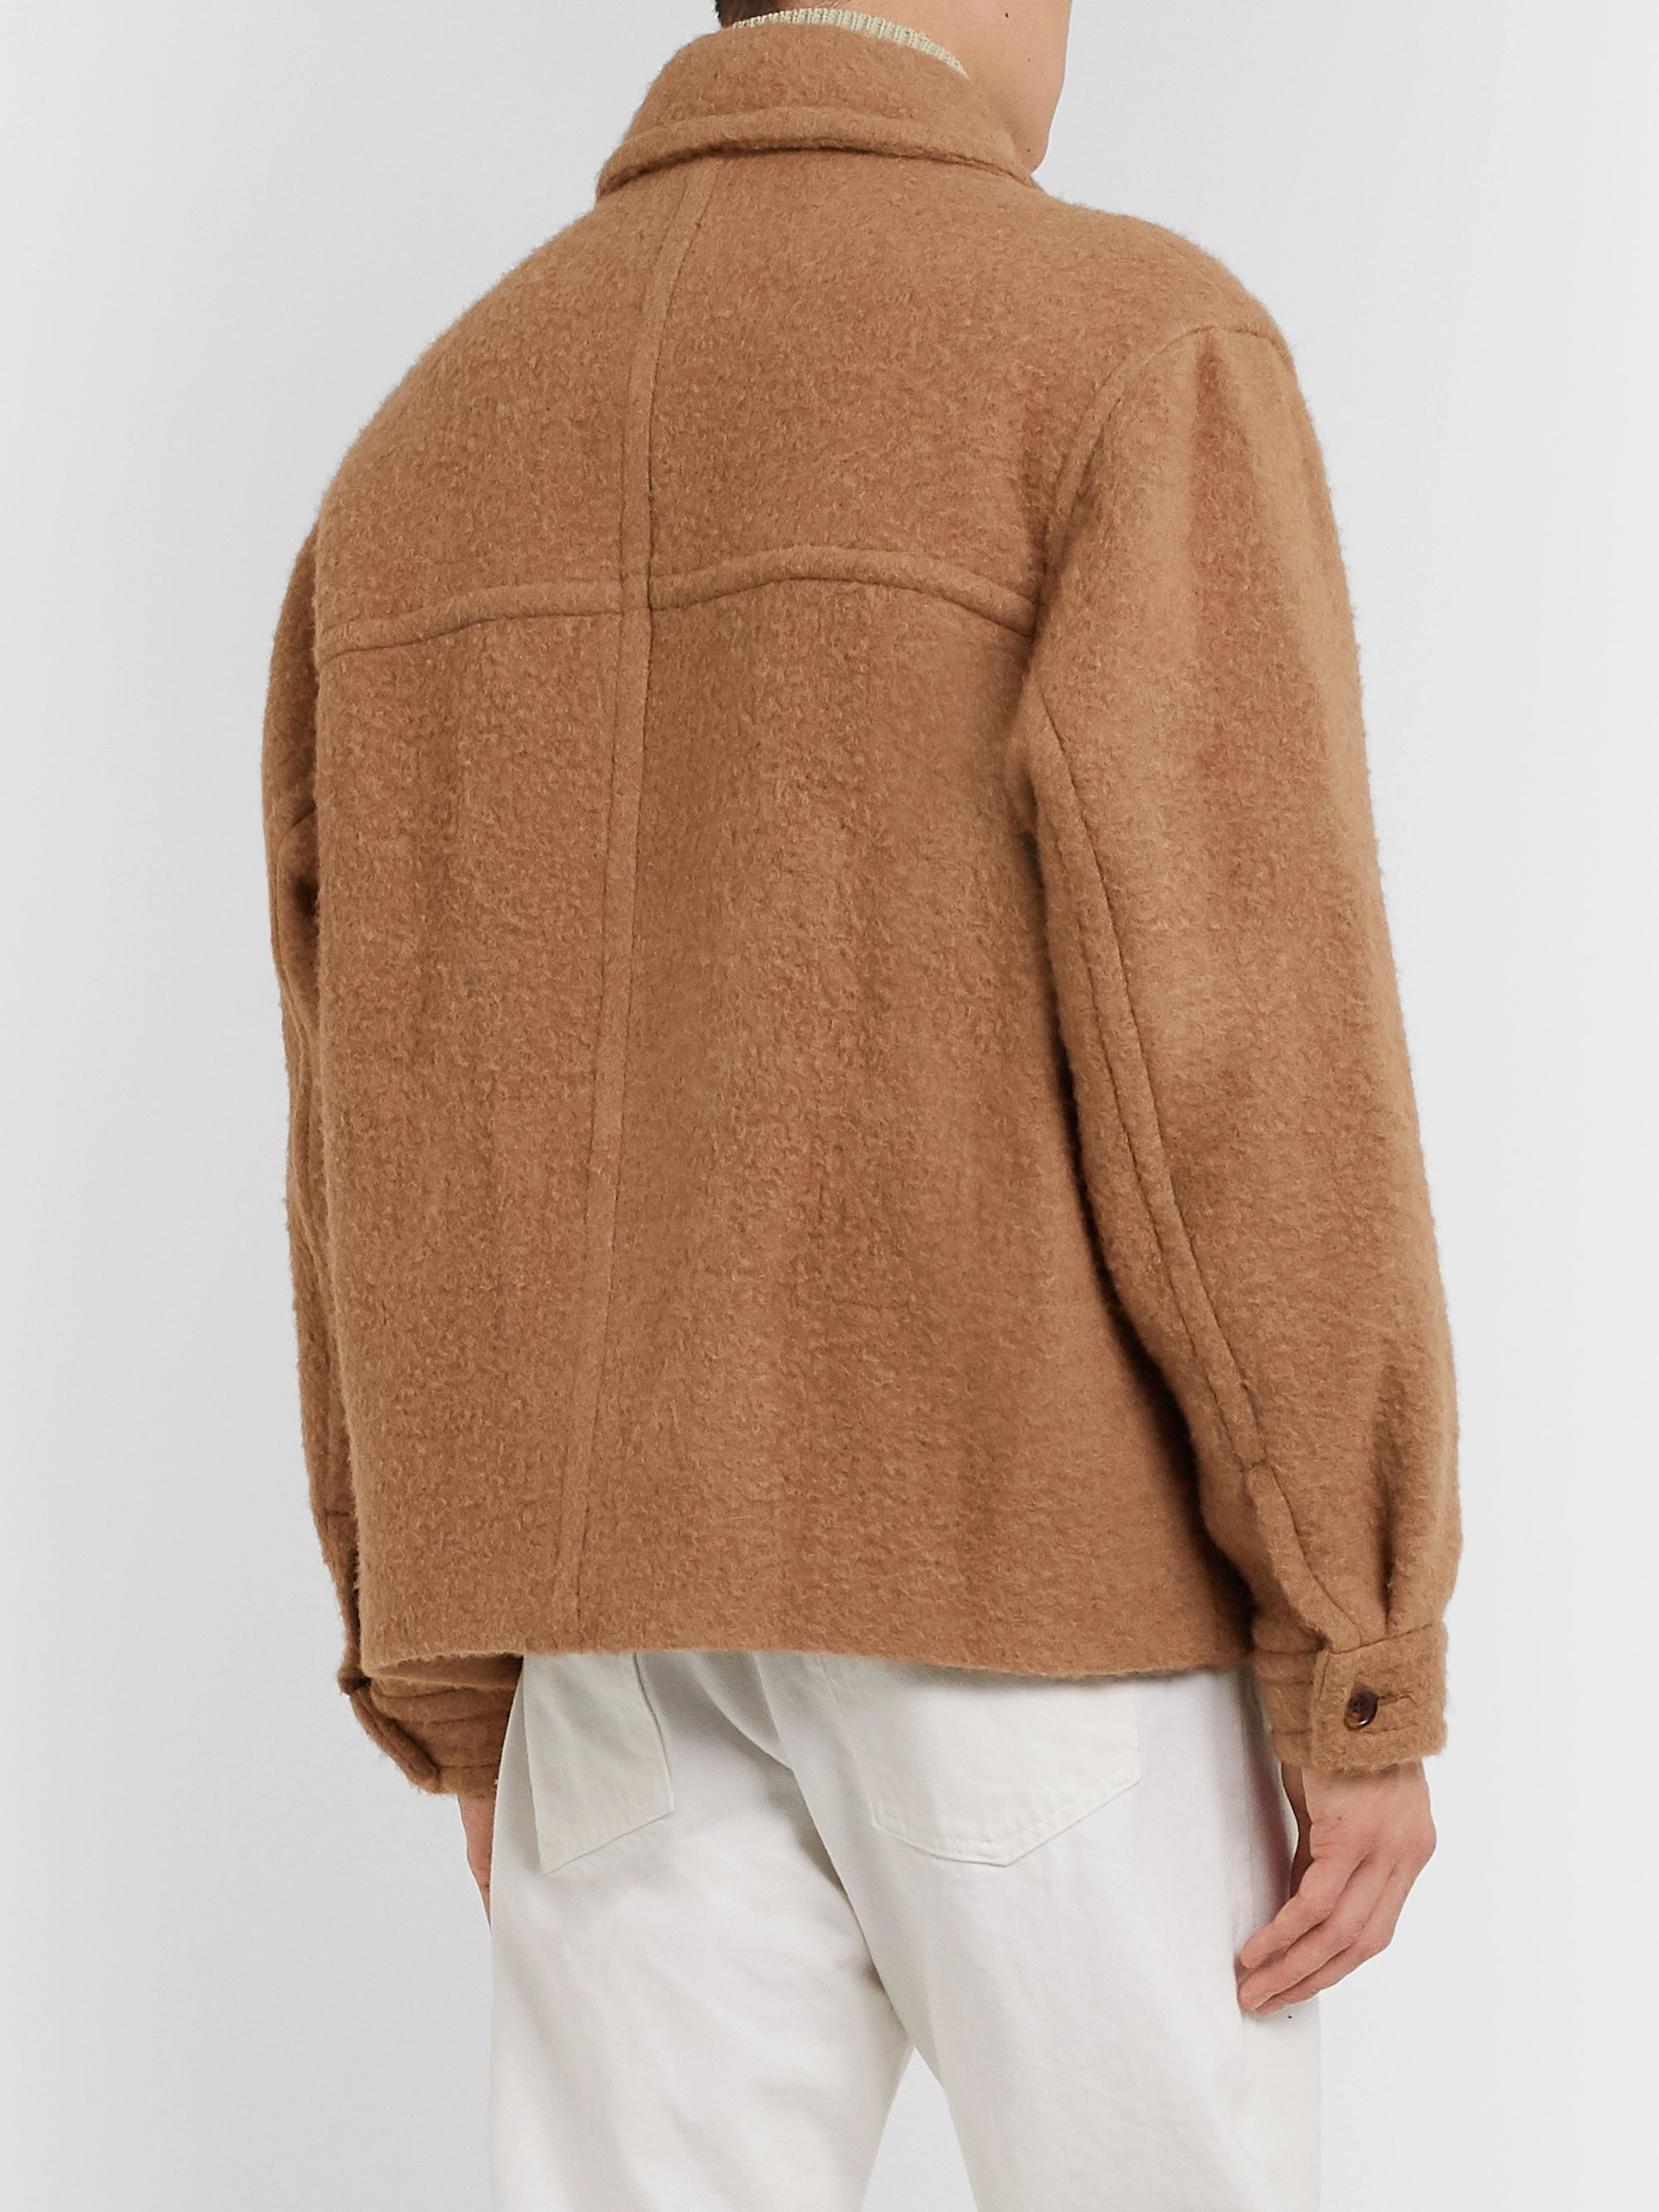 Auralee Brushed Camel Hair Blouson Jacket